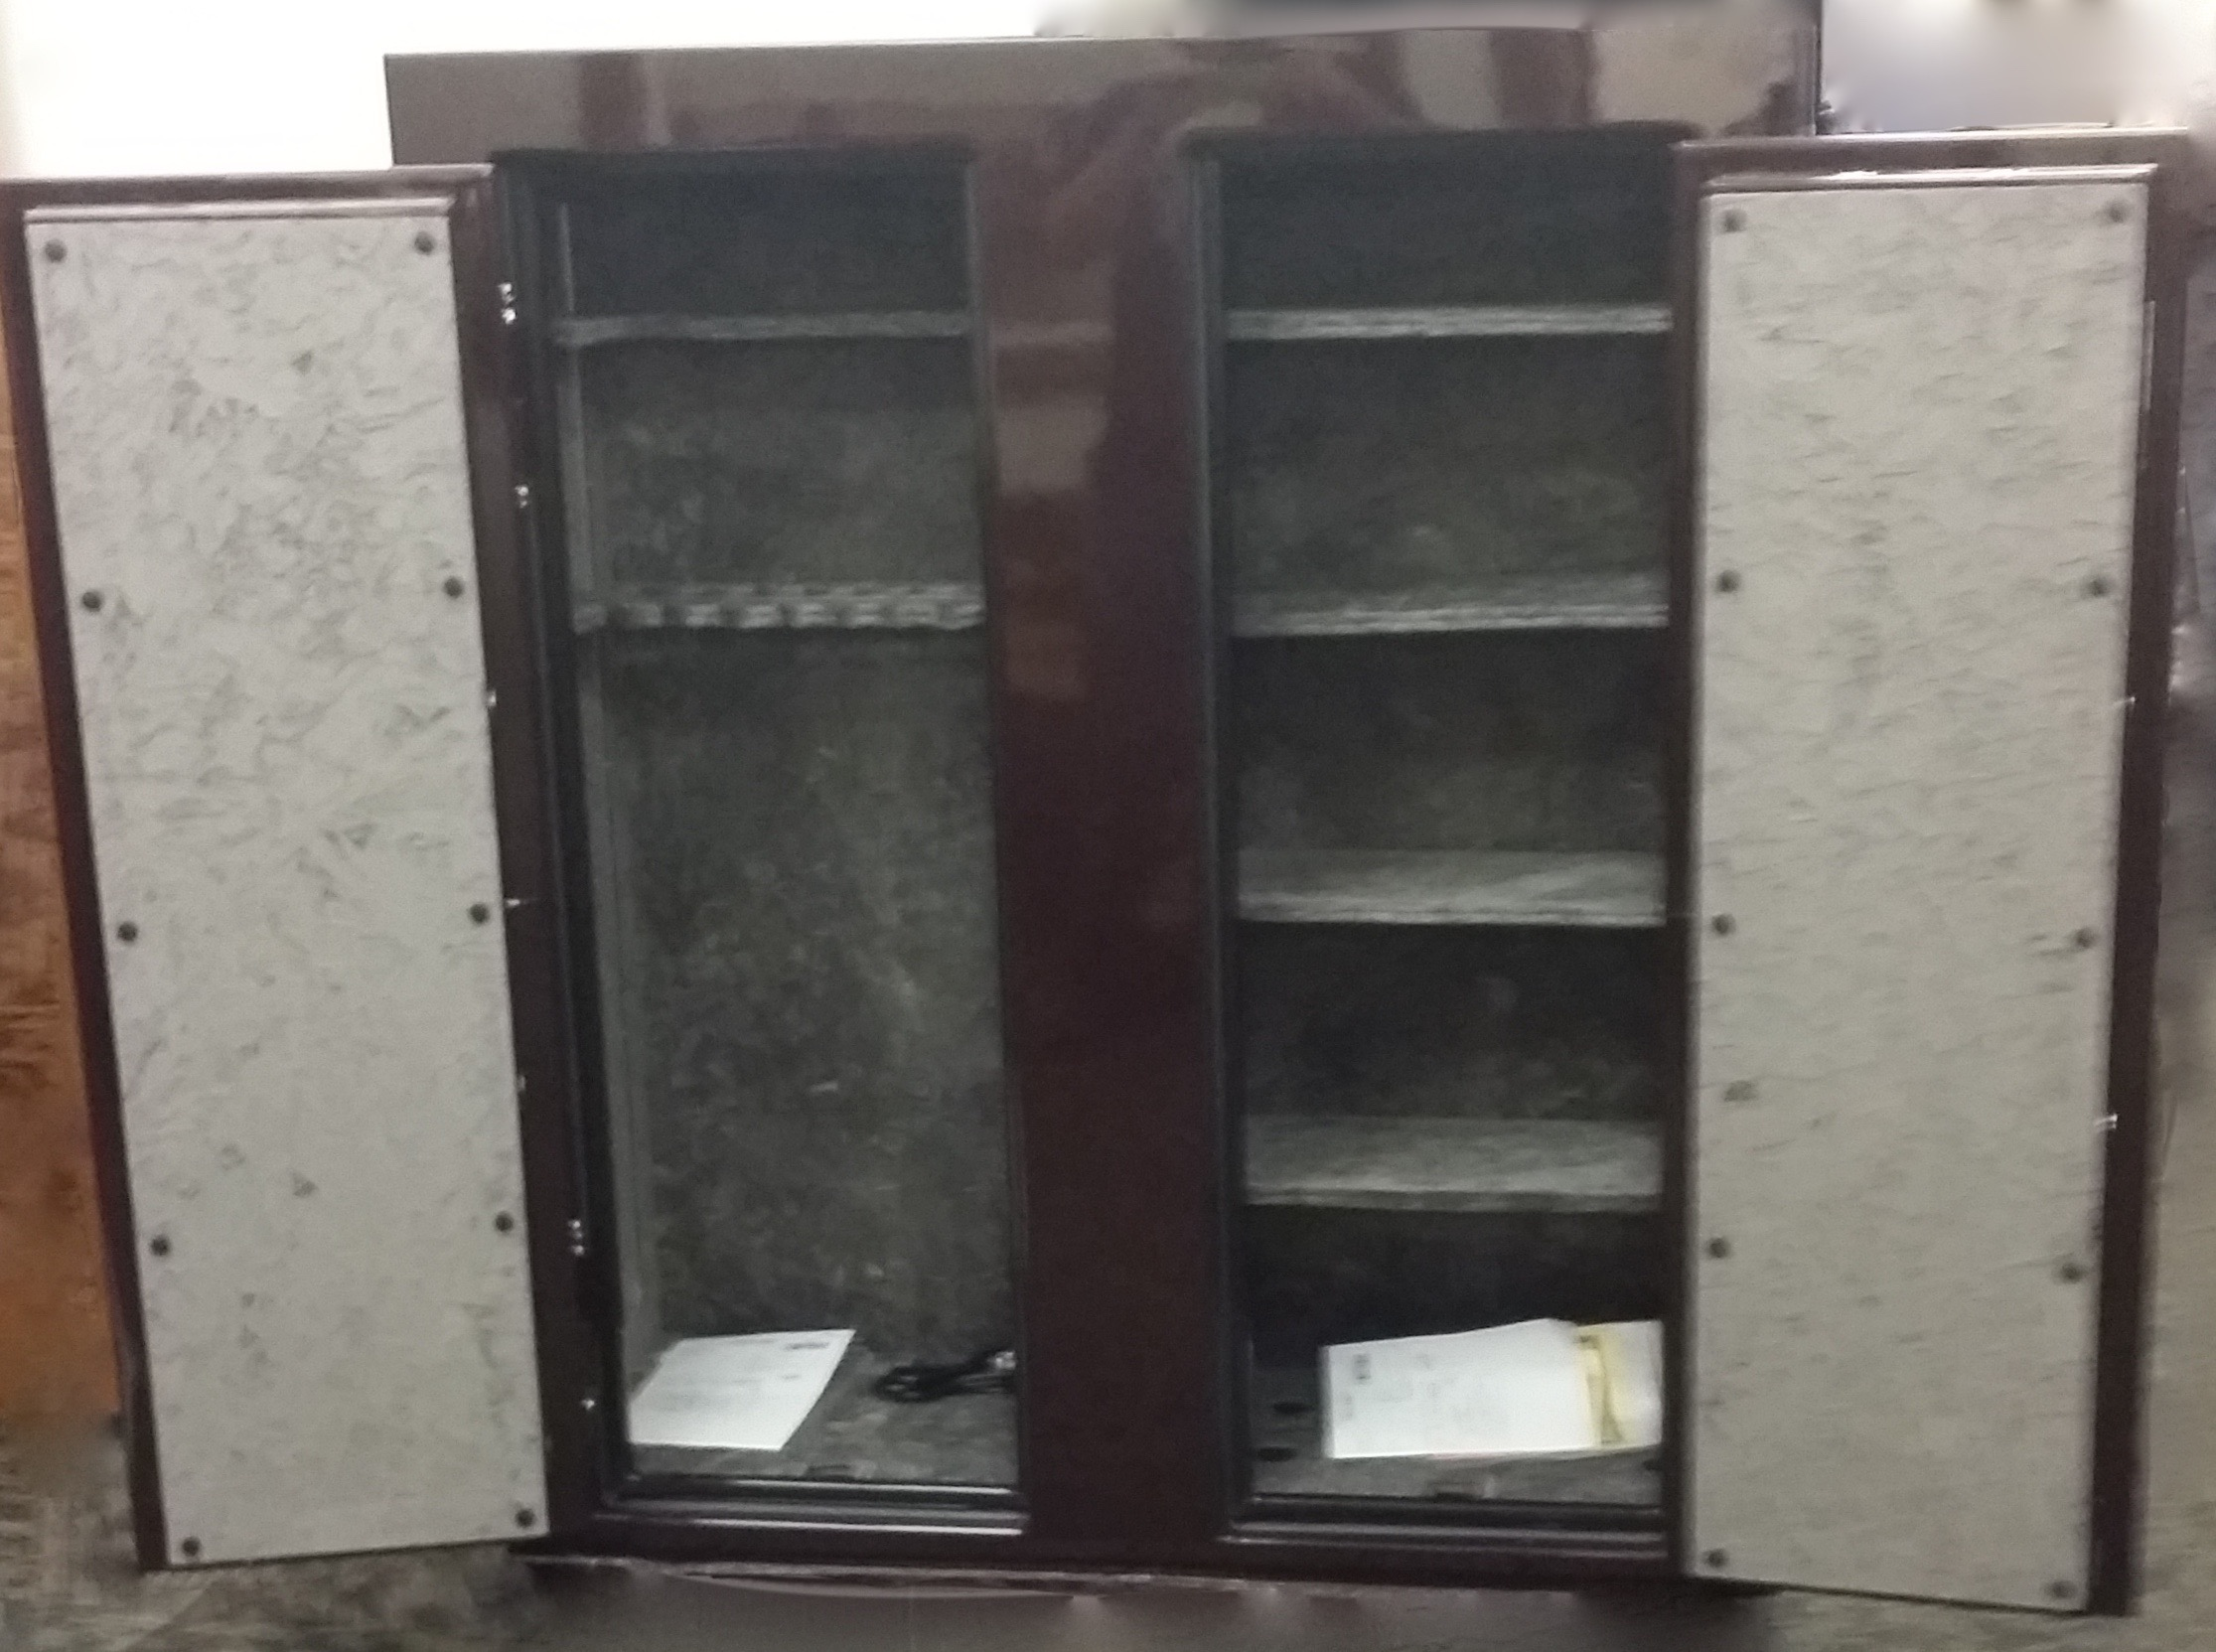 Fort Knox Defender 6052 Double Door Gun and Jewelry Safe - The Safe